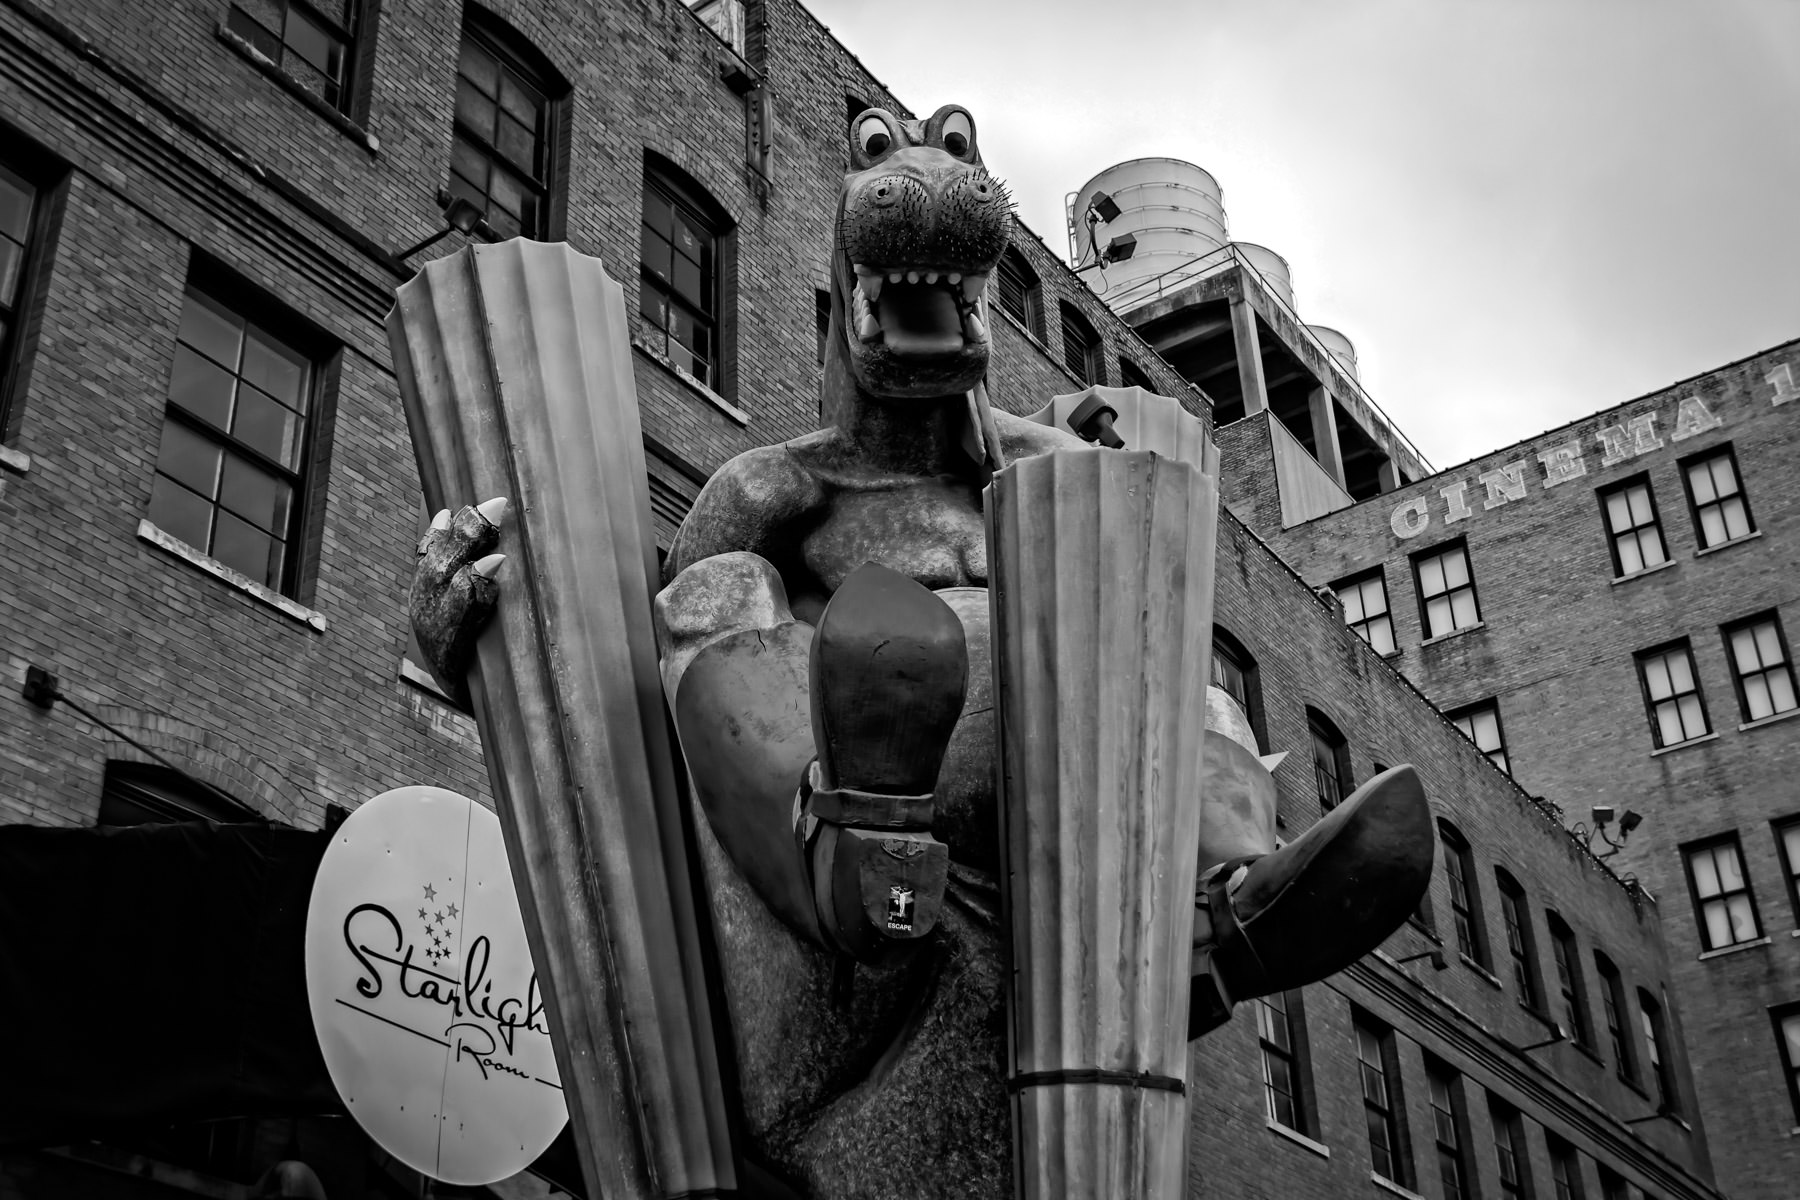 A leftover relic of the long-closed Dallas location of Planet Hollywood, this dragon statue sits in the city's West End district.